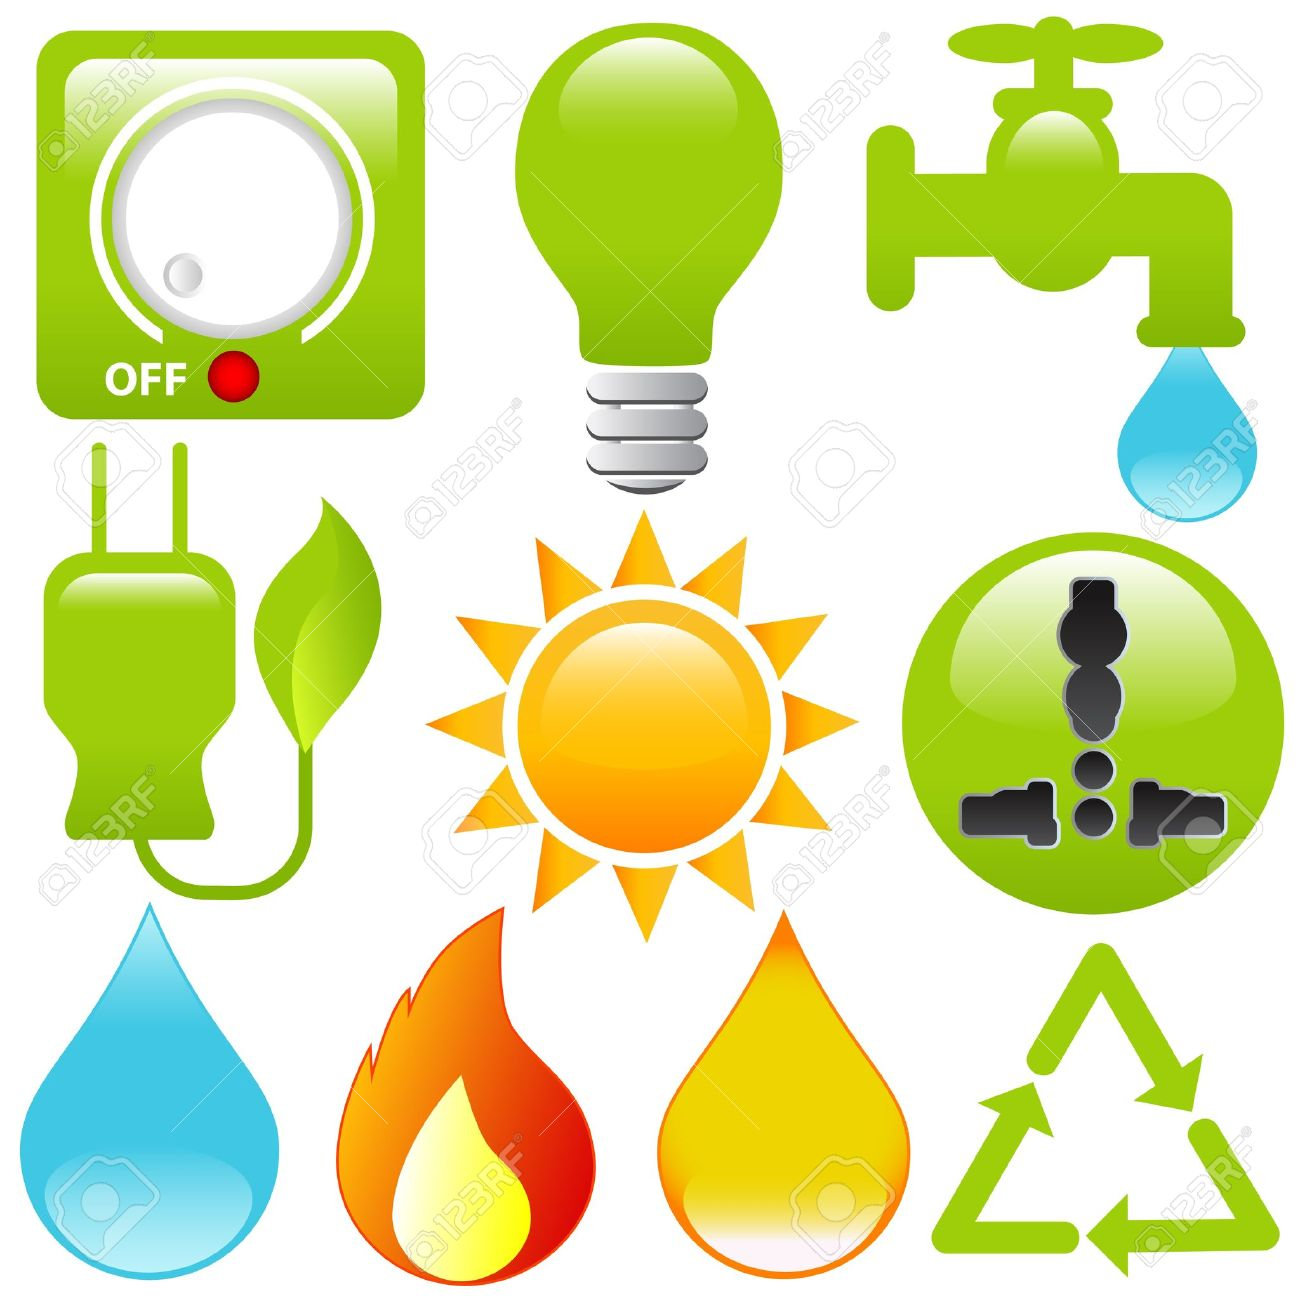 Clipart Energy Saving Energy Saving Icons Energy